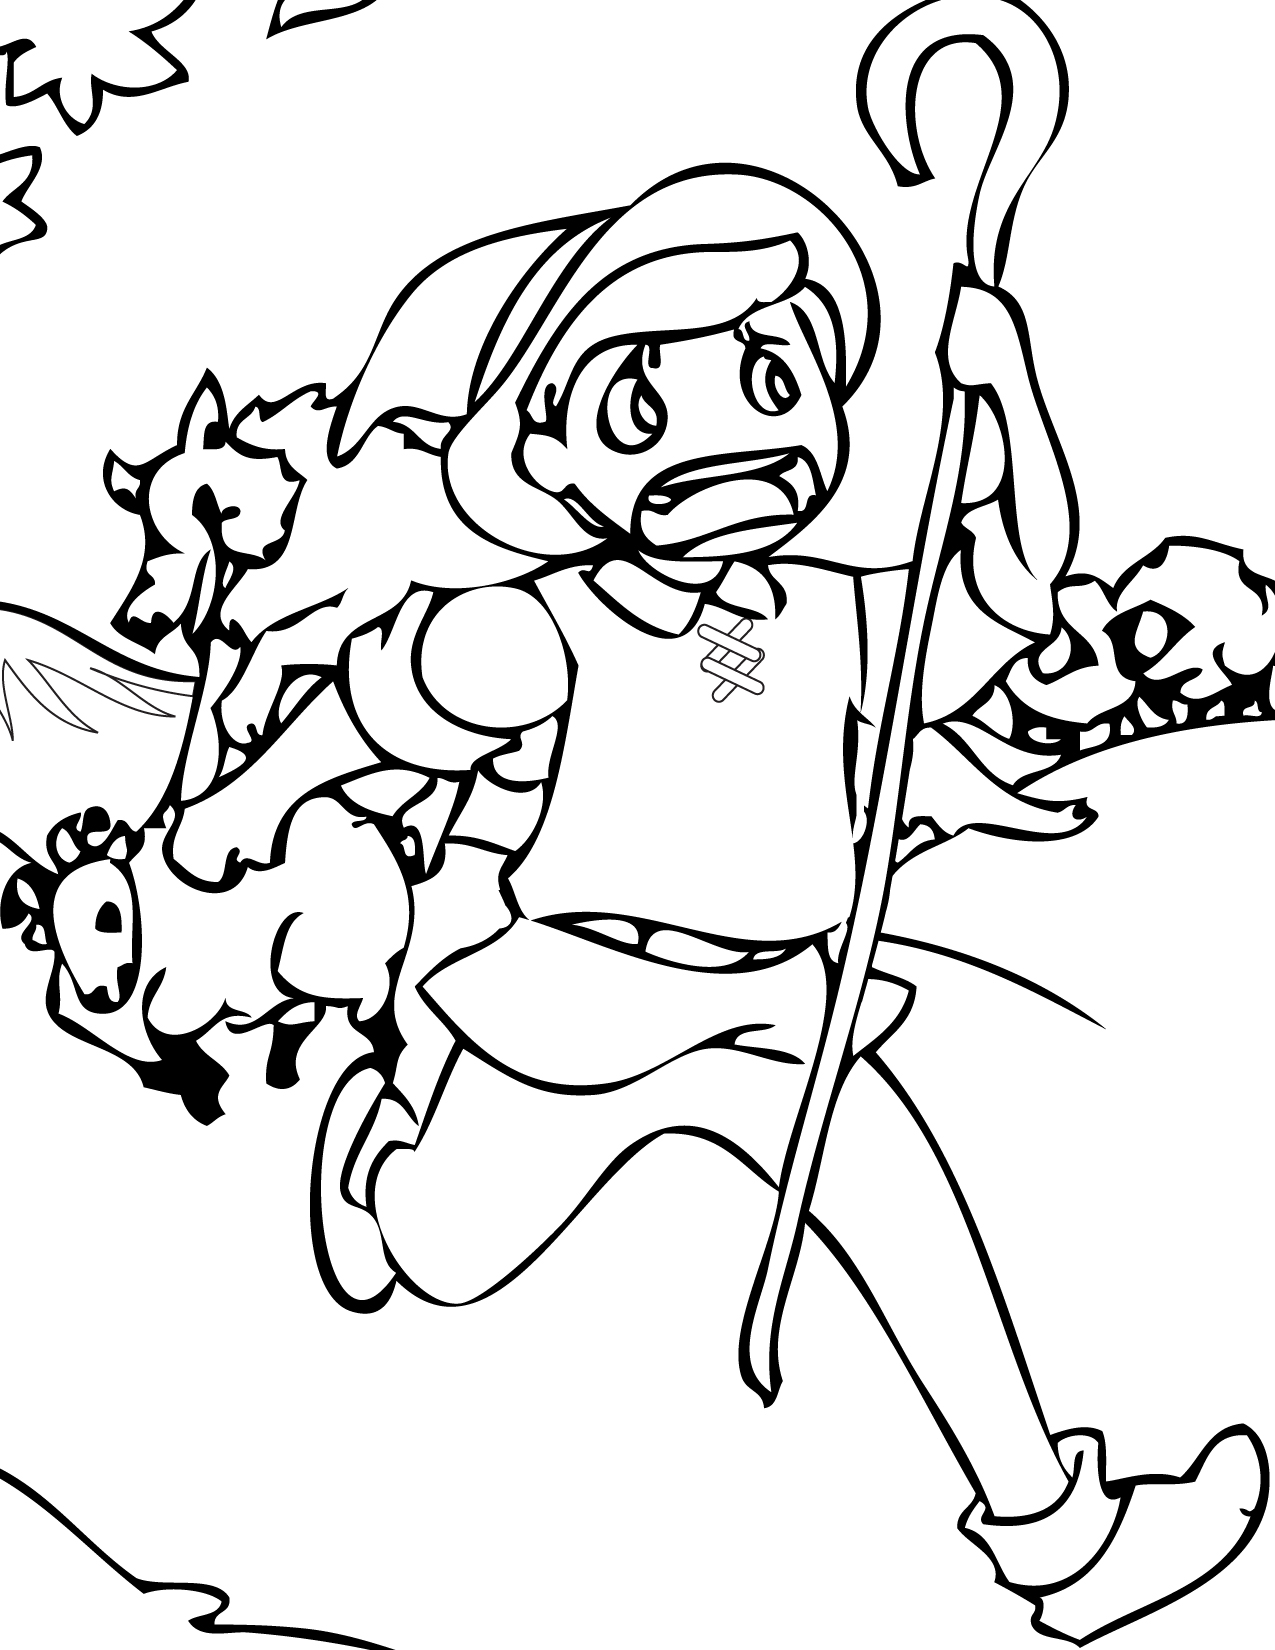 1275x1650 The Boy Who Cried Wolf Coloring Pages